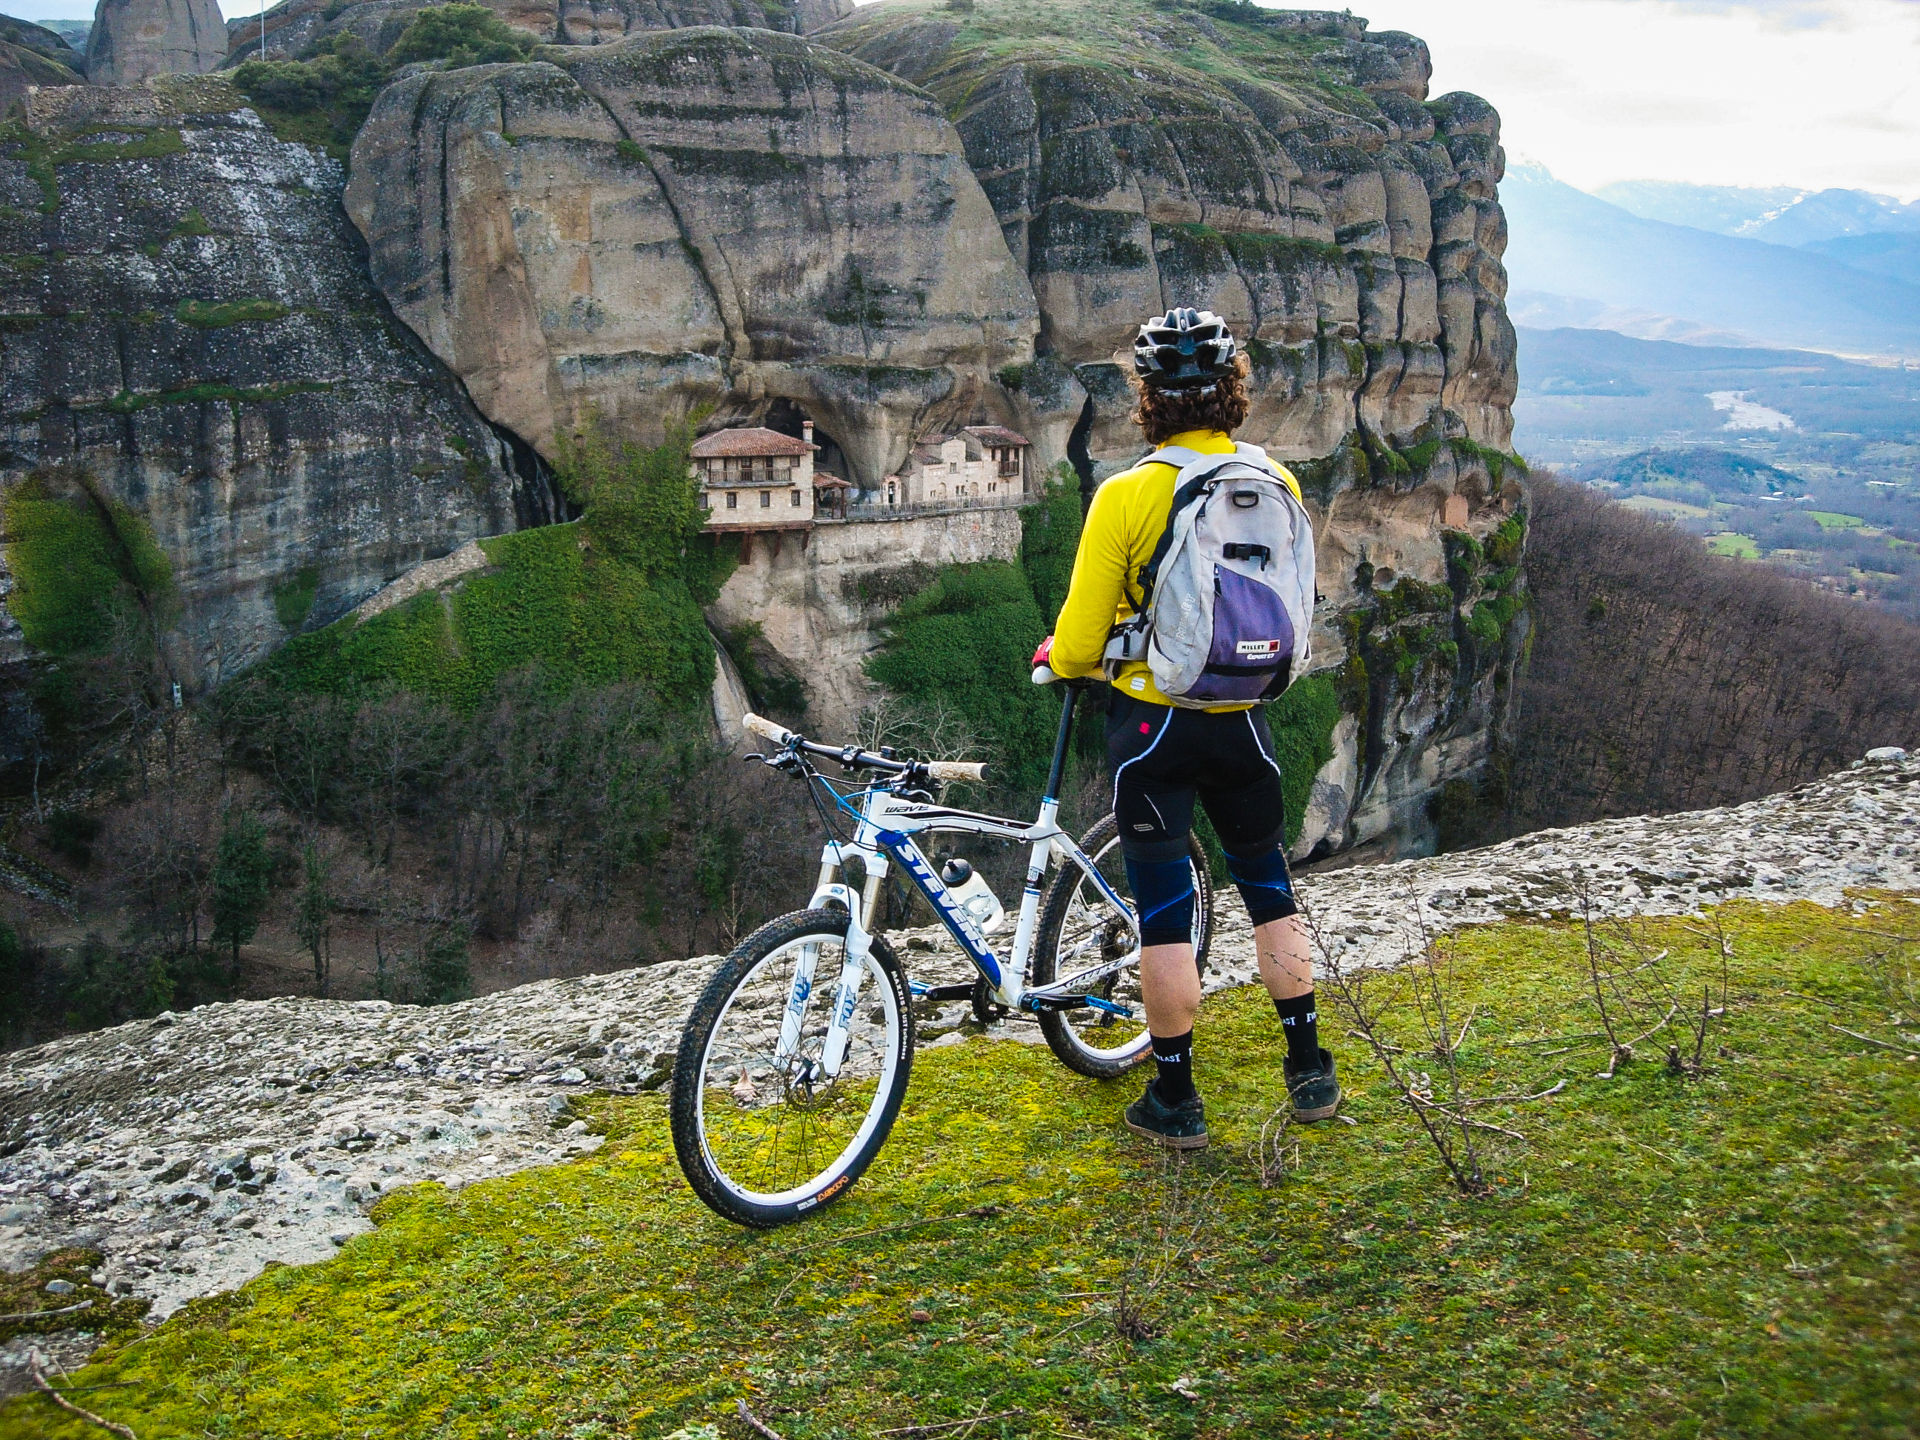 Exploring Meteora by bike